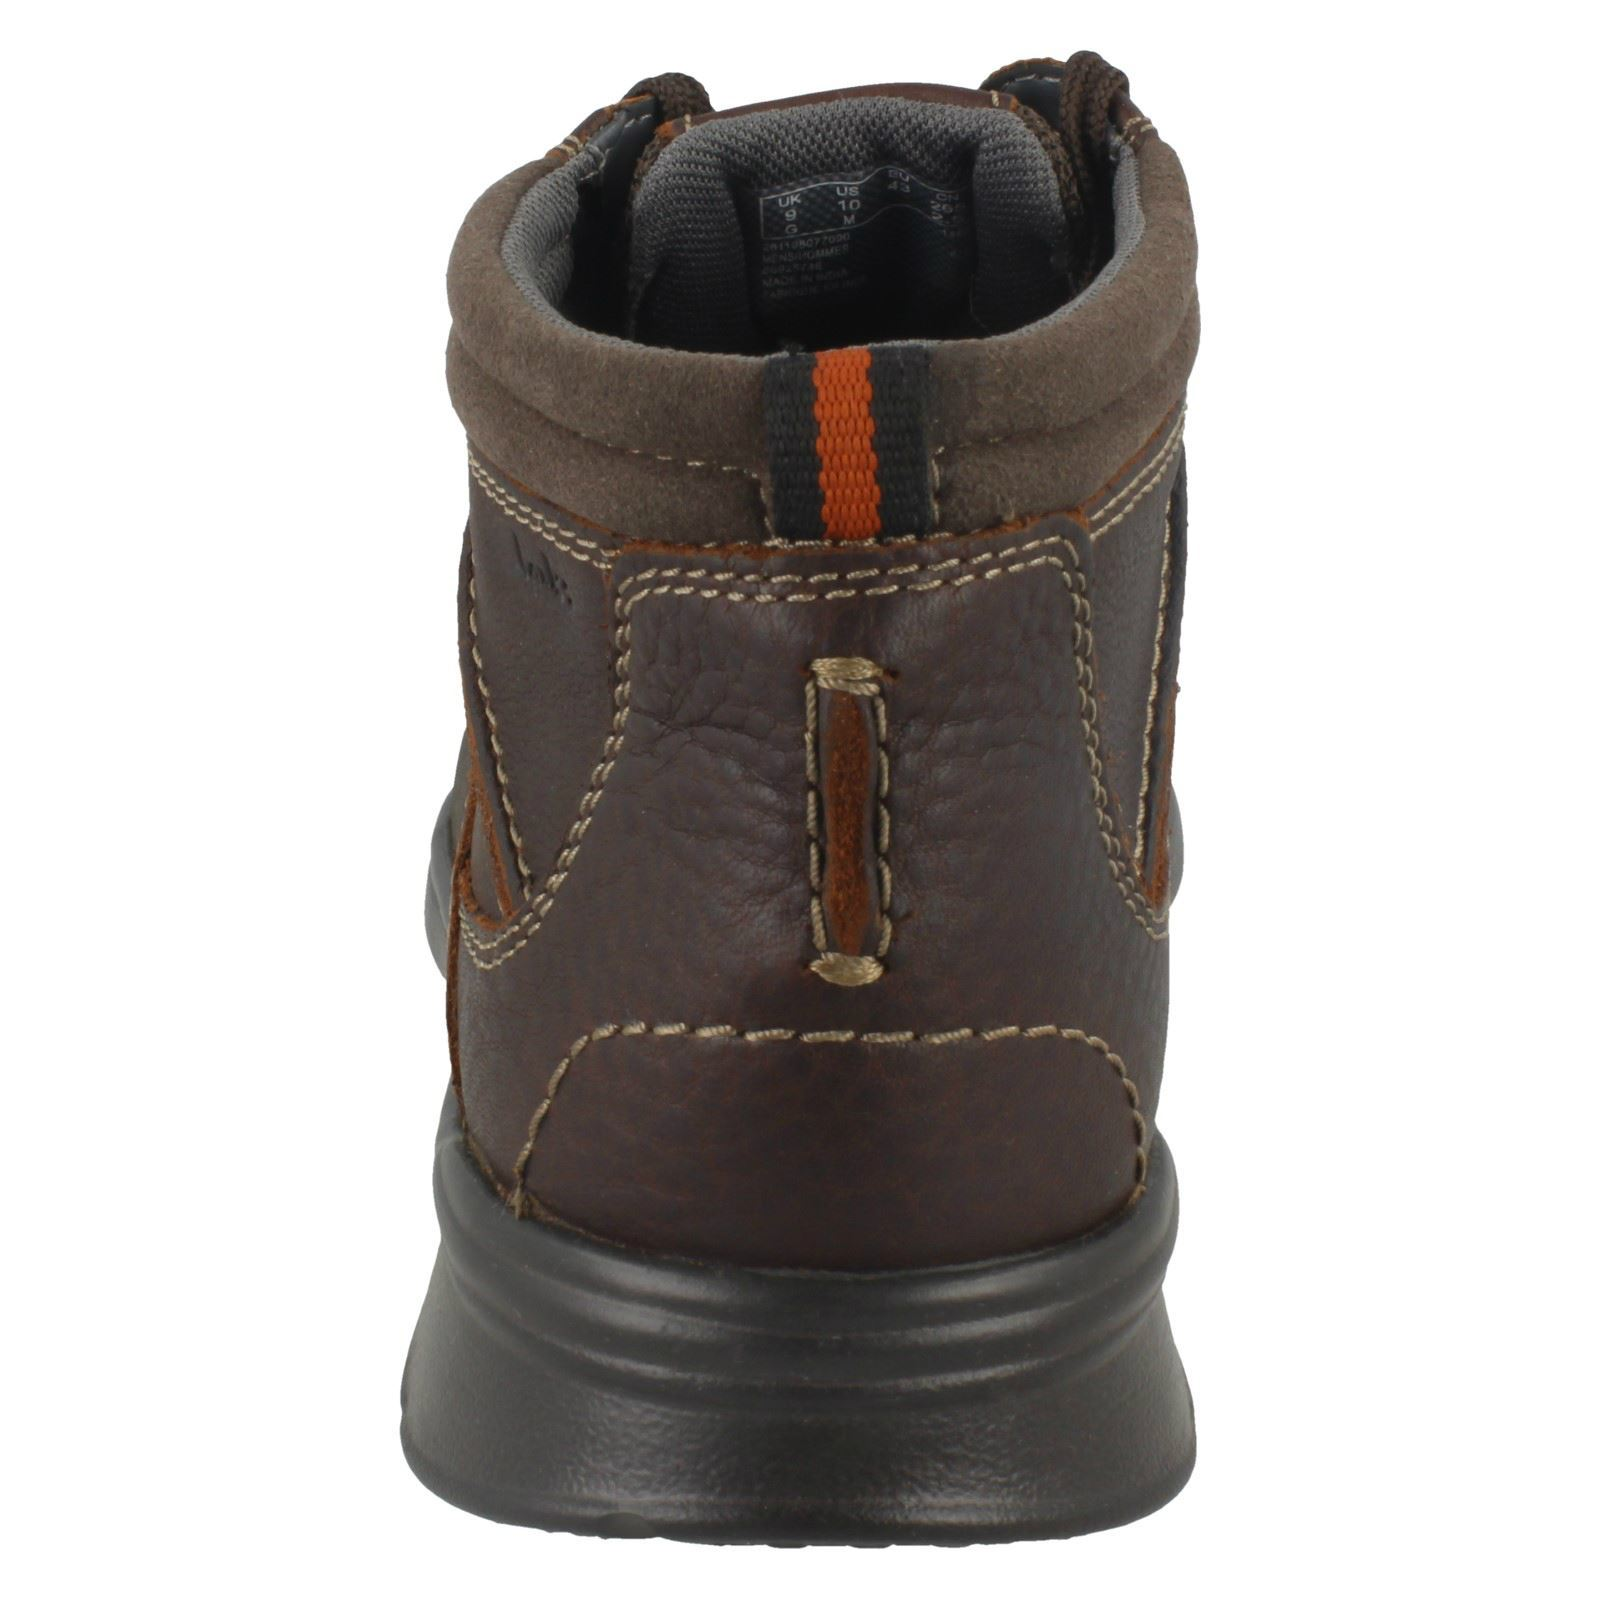 Mens-Clarks-Cotrell-Rise-Casual-Lace-Up-Ankle-Boots thumbnail 14